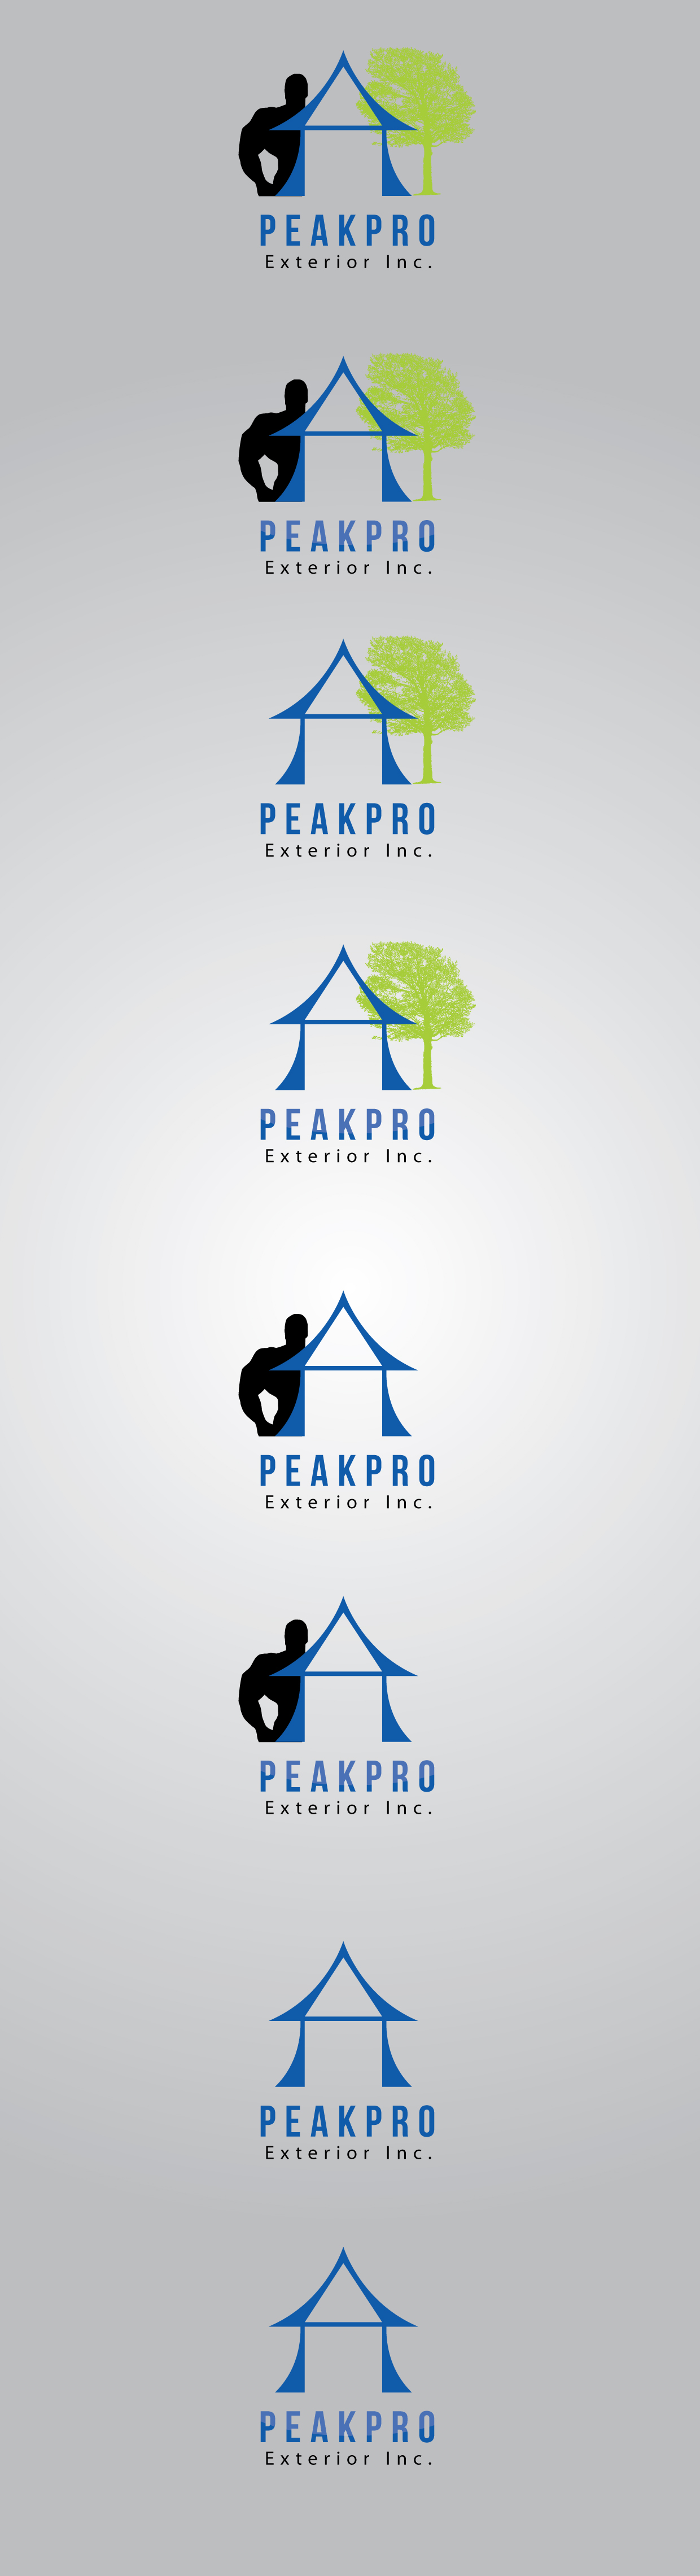 Logo Design by mediaproductionart - Entry No. 82 in the Logo Design Contest Captivating Logo Design for Peakpro Exteriors Inc..